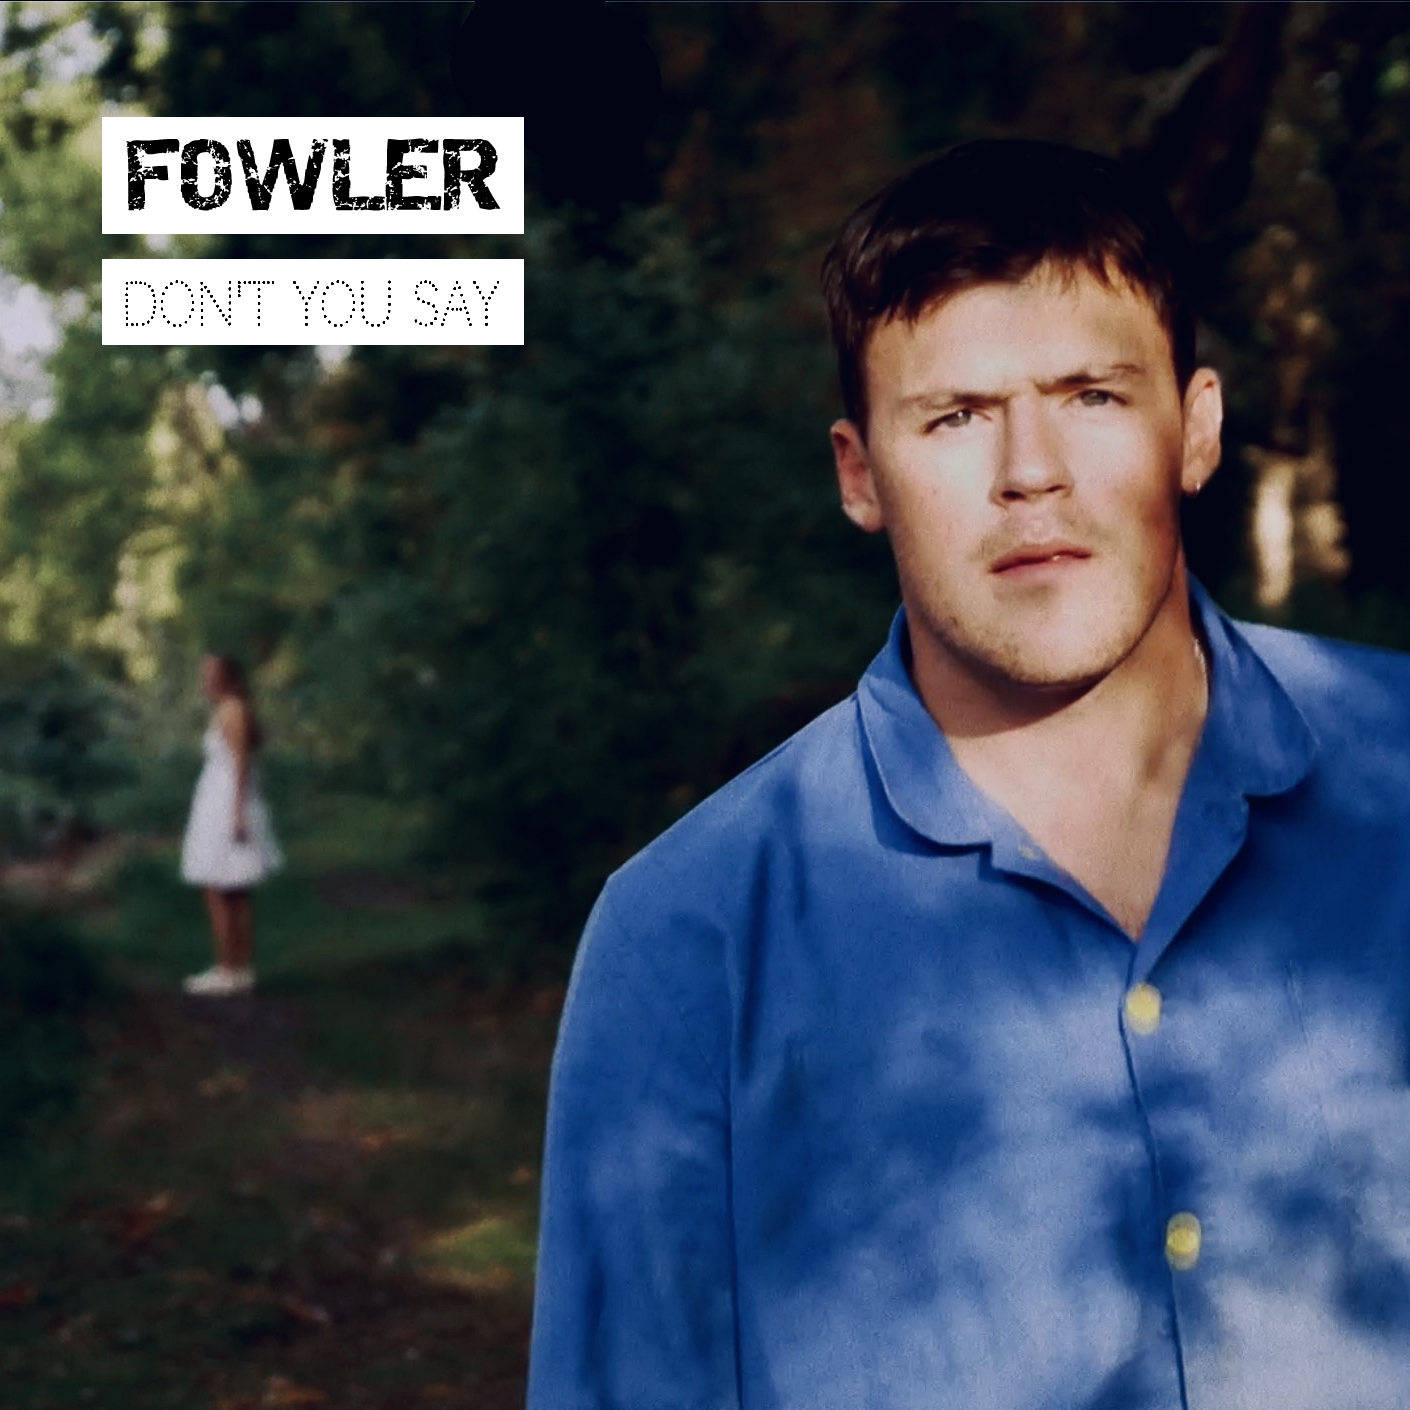 British Singer-Songwriter Fowler Releases New Single 'Don't You Say' After Making Music Over Zoom Calls